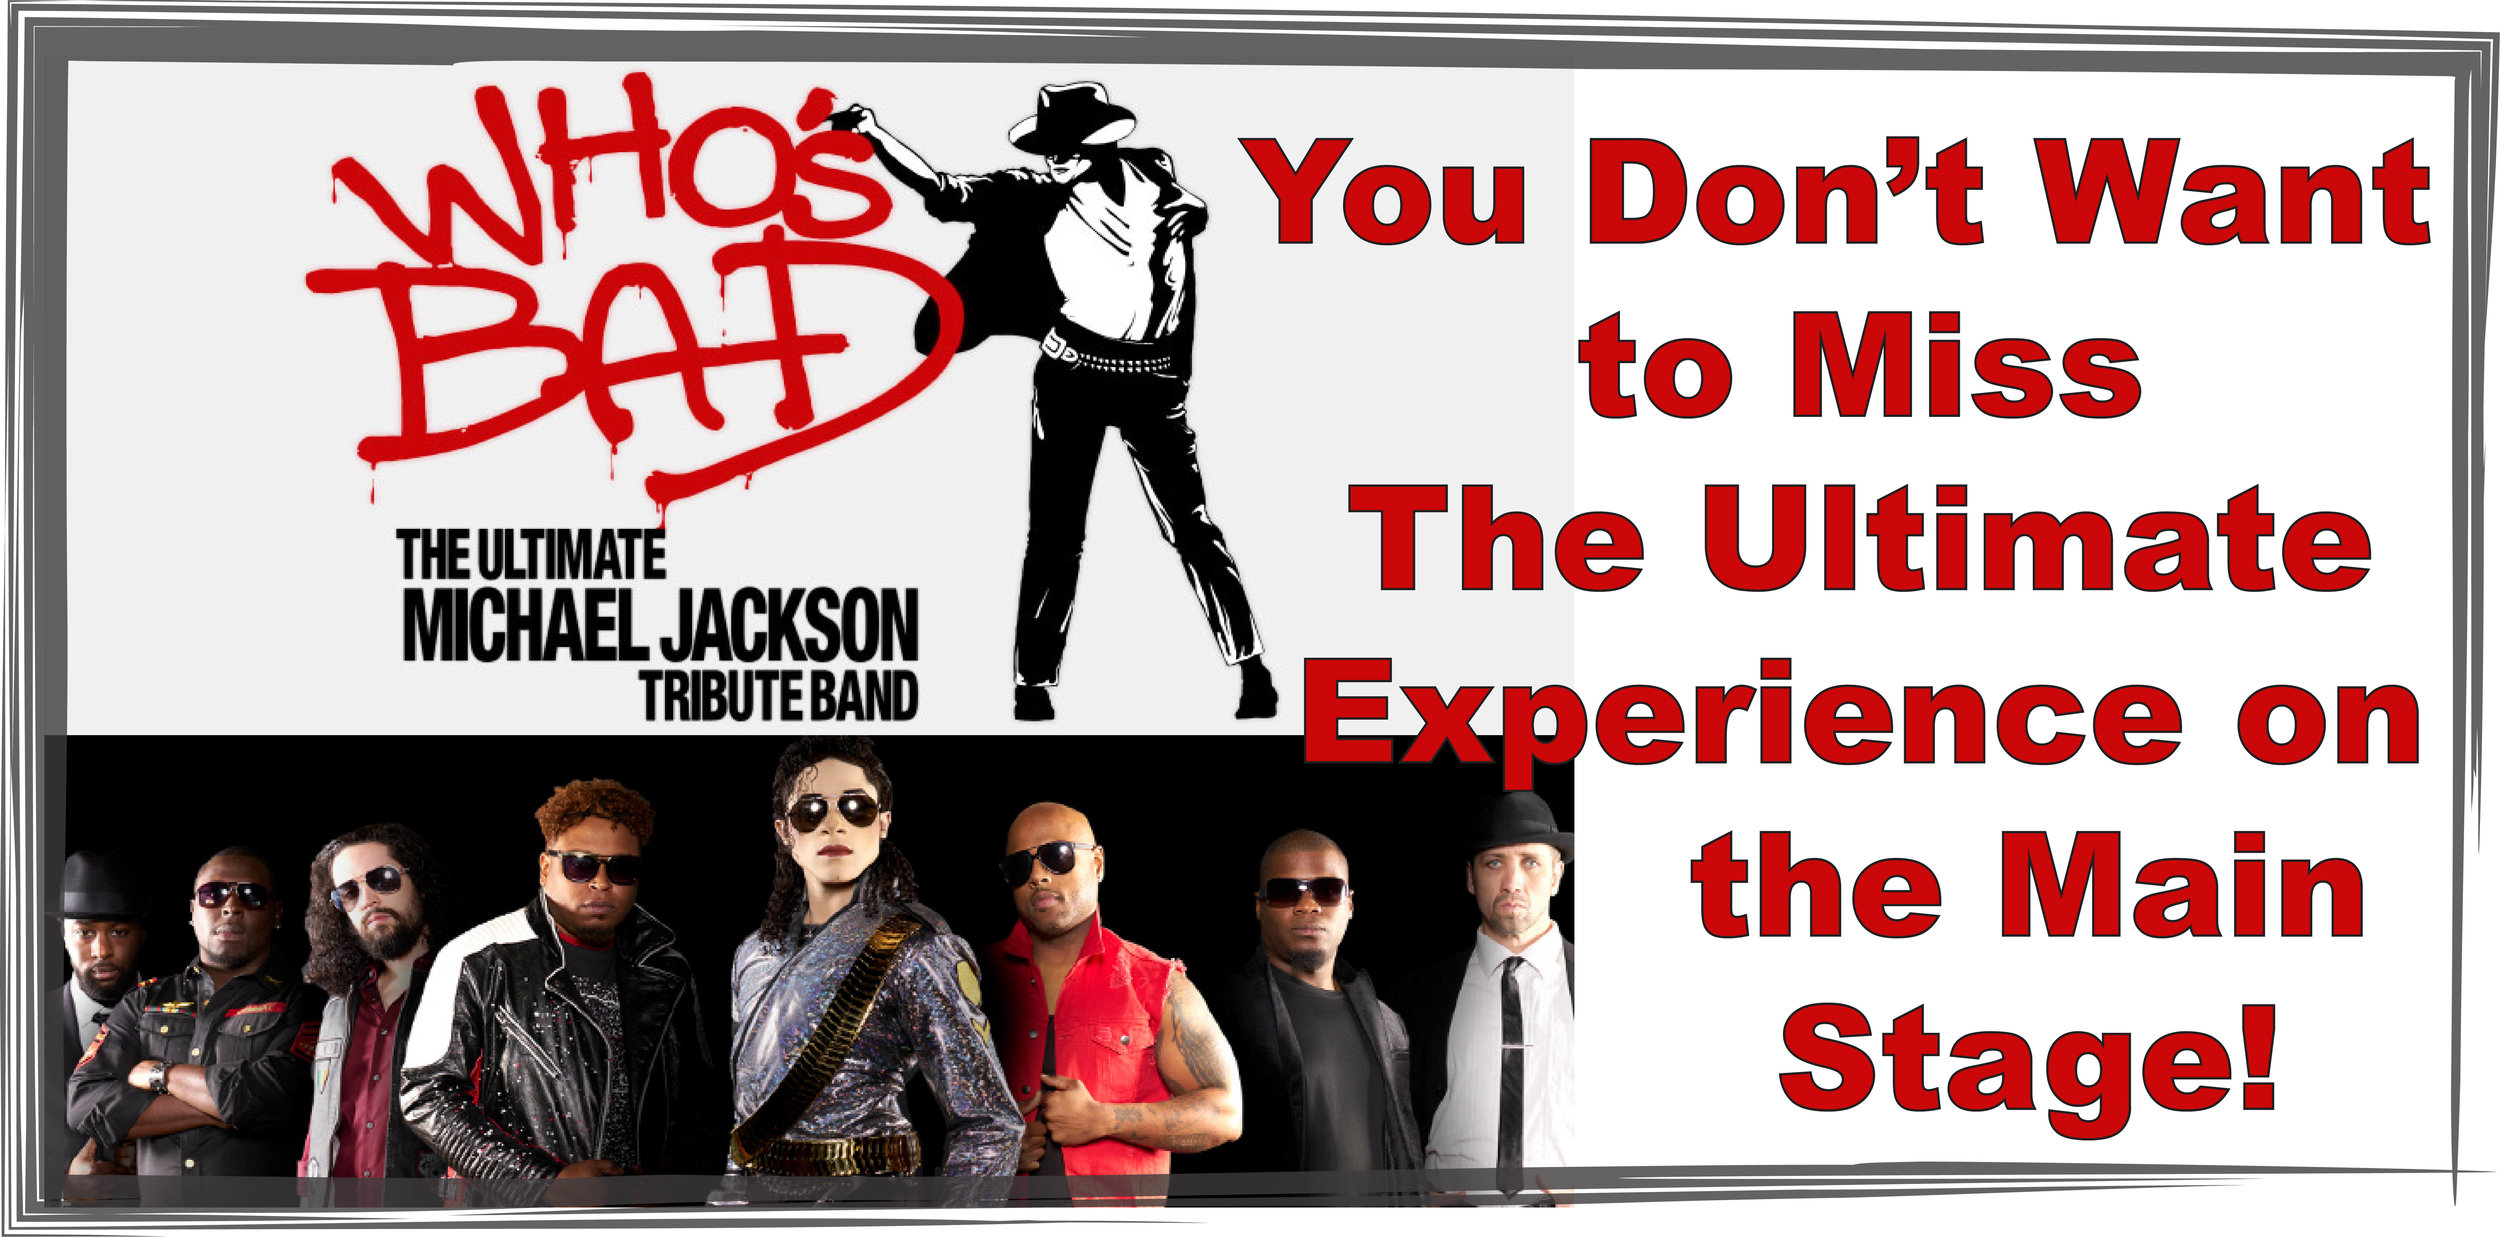 An Ultimate Michael Jackson Experience hits the Warehouse stage for a fun night of Live Music! Don't miss a chance to hear all the Michael Jackson hits and moves! Tickets on sale soon!